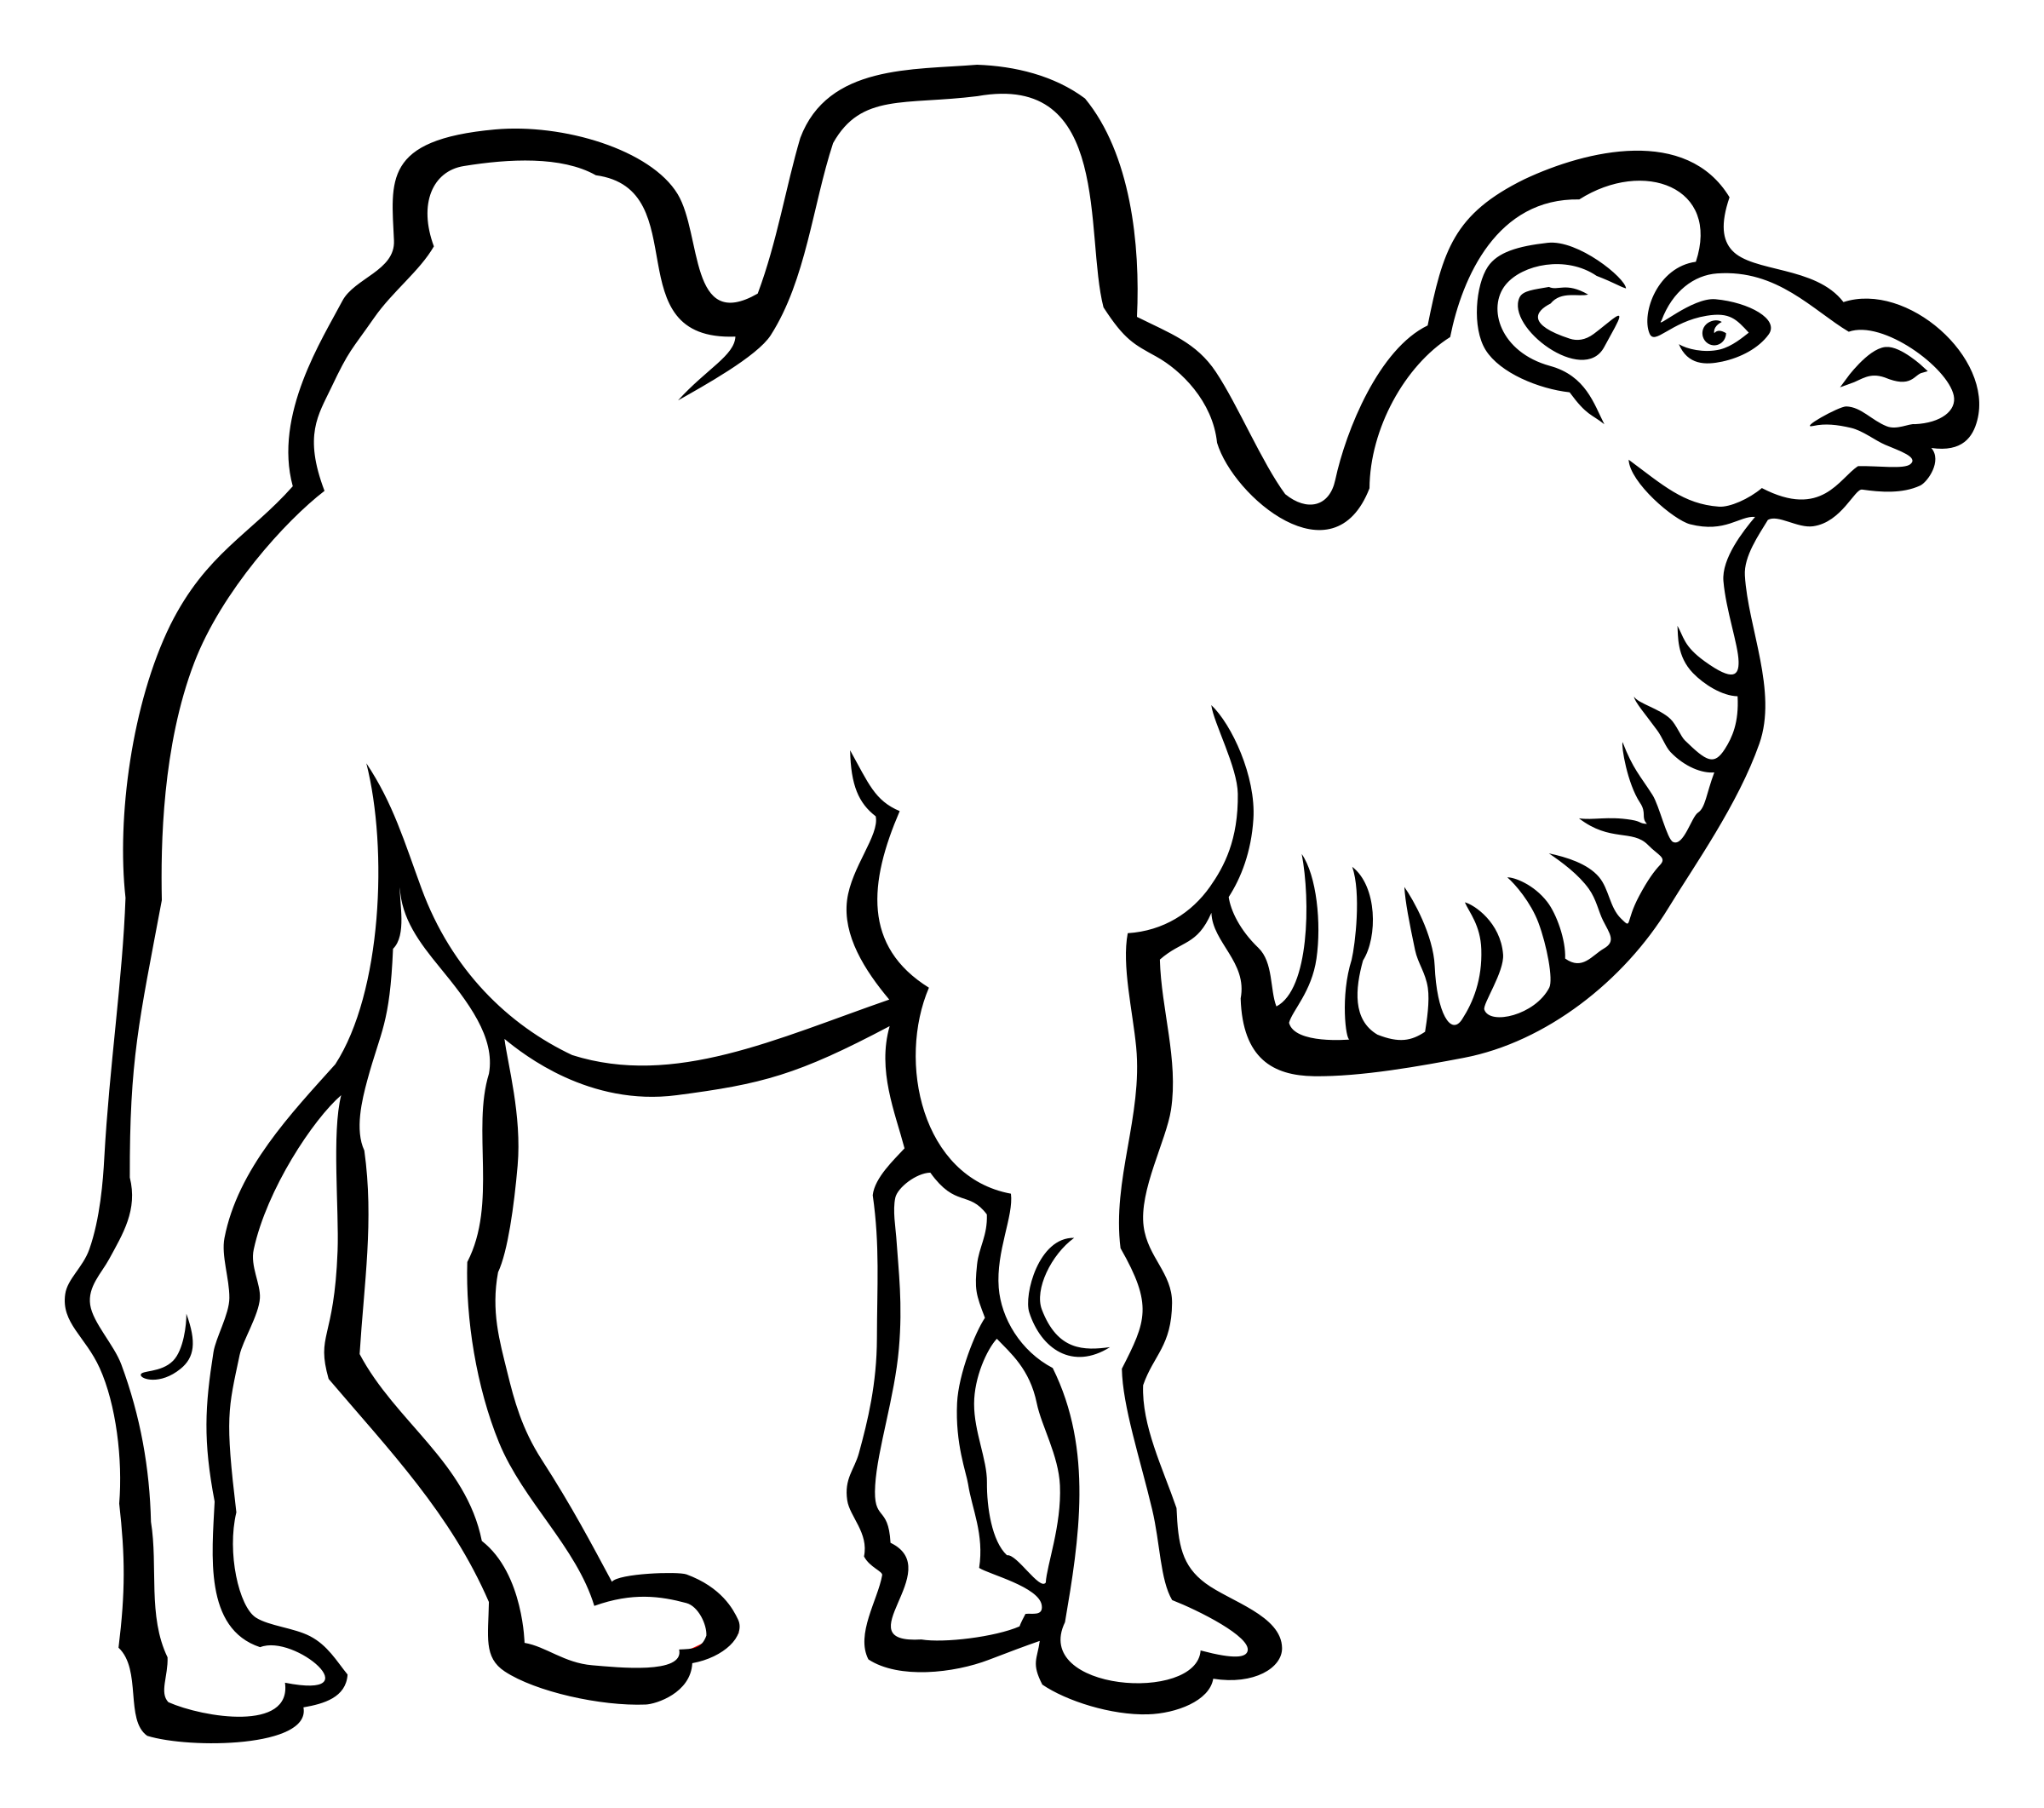 camel - lineart by frankes